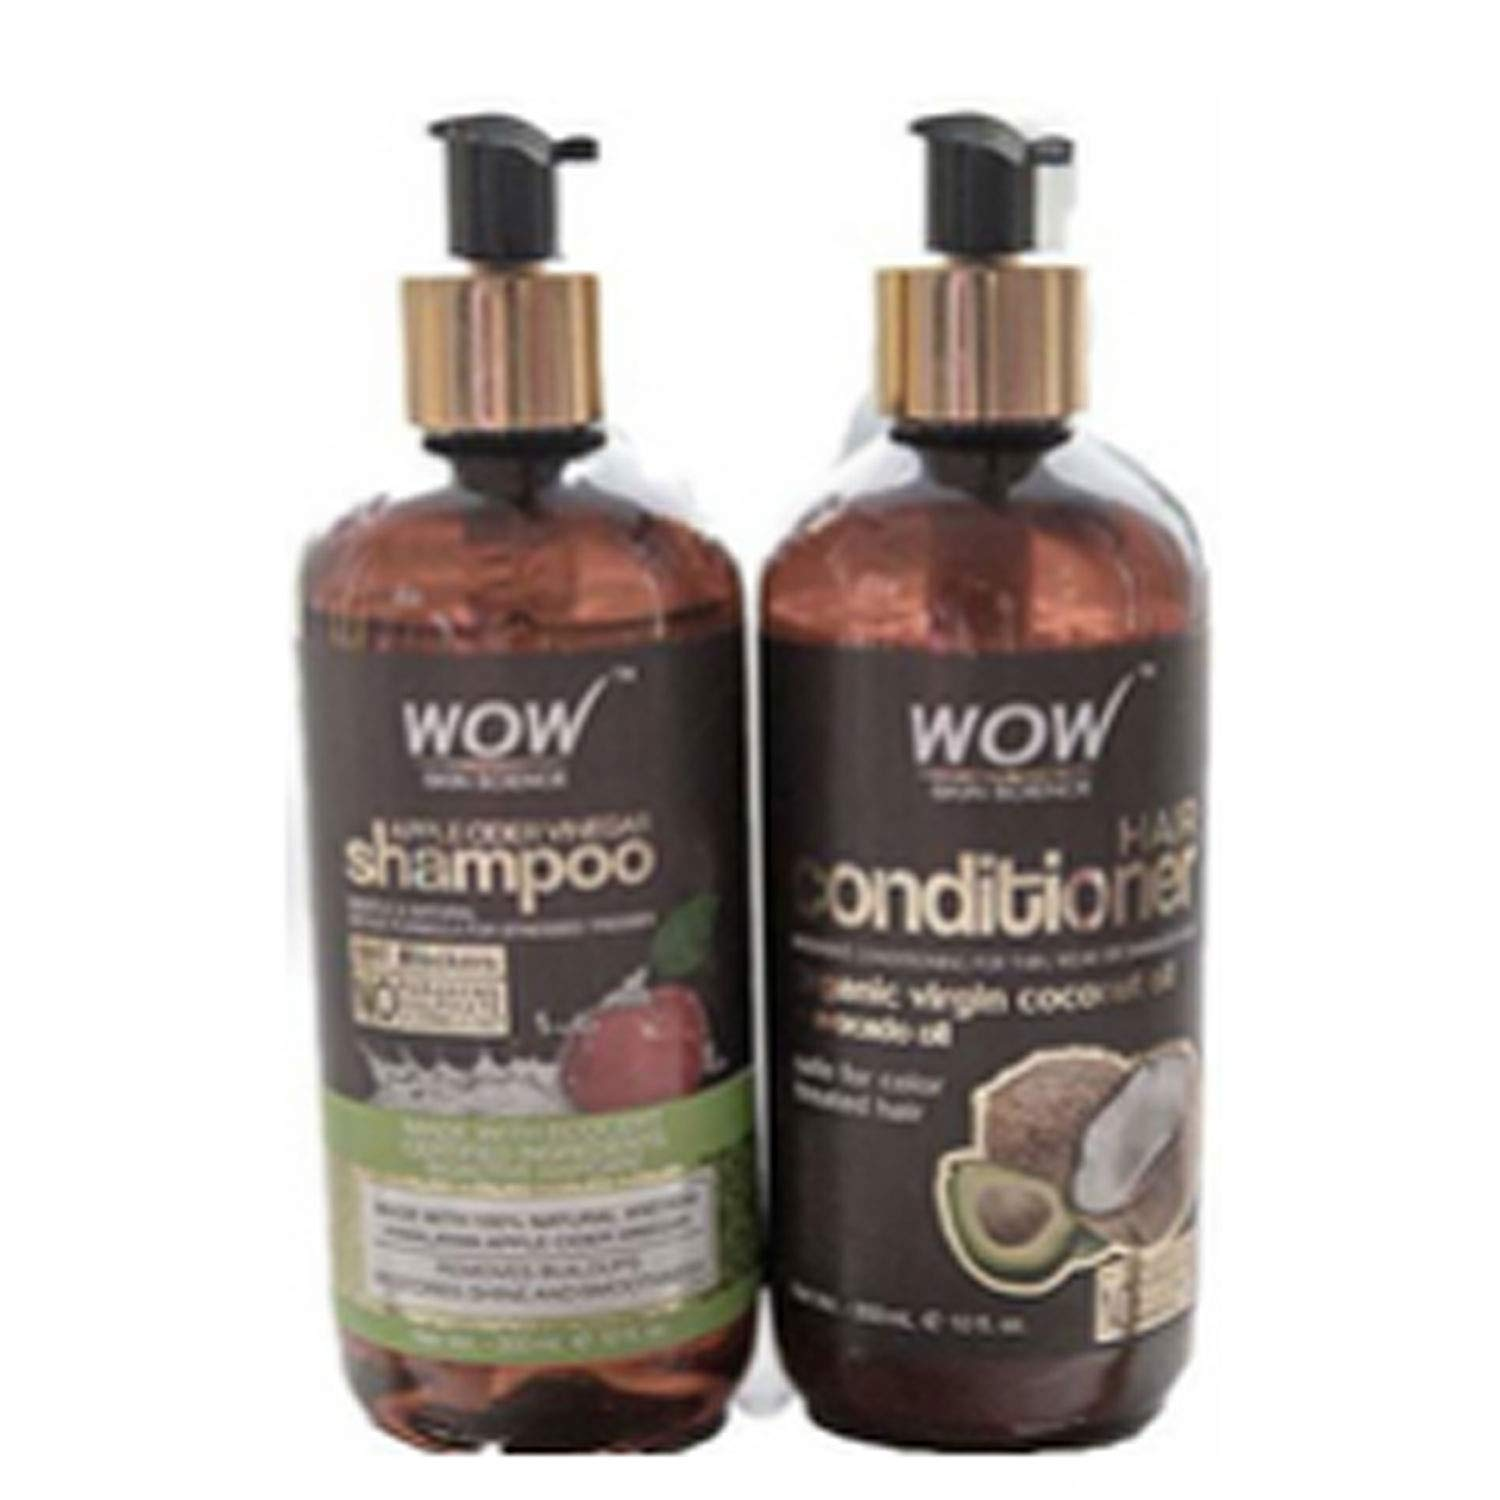 Wow Apple Cider Vinegar Hair Shampoo and Wow Hair Conditioner Set- Clarifying, Damage Repair, Antifungal, Anti Bacterial, Vegan- no Sulphate or ...